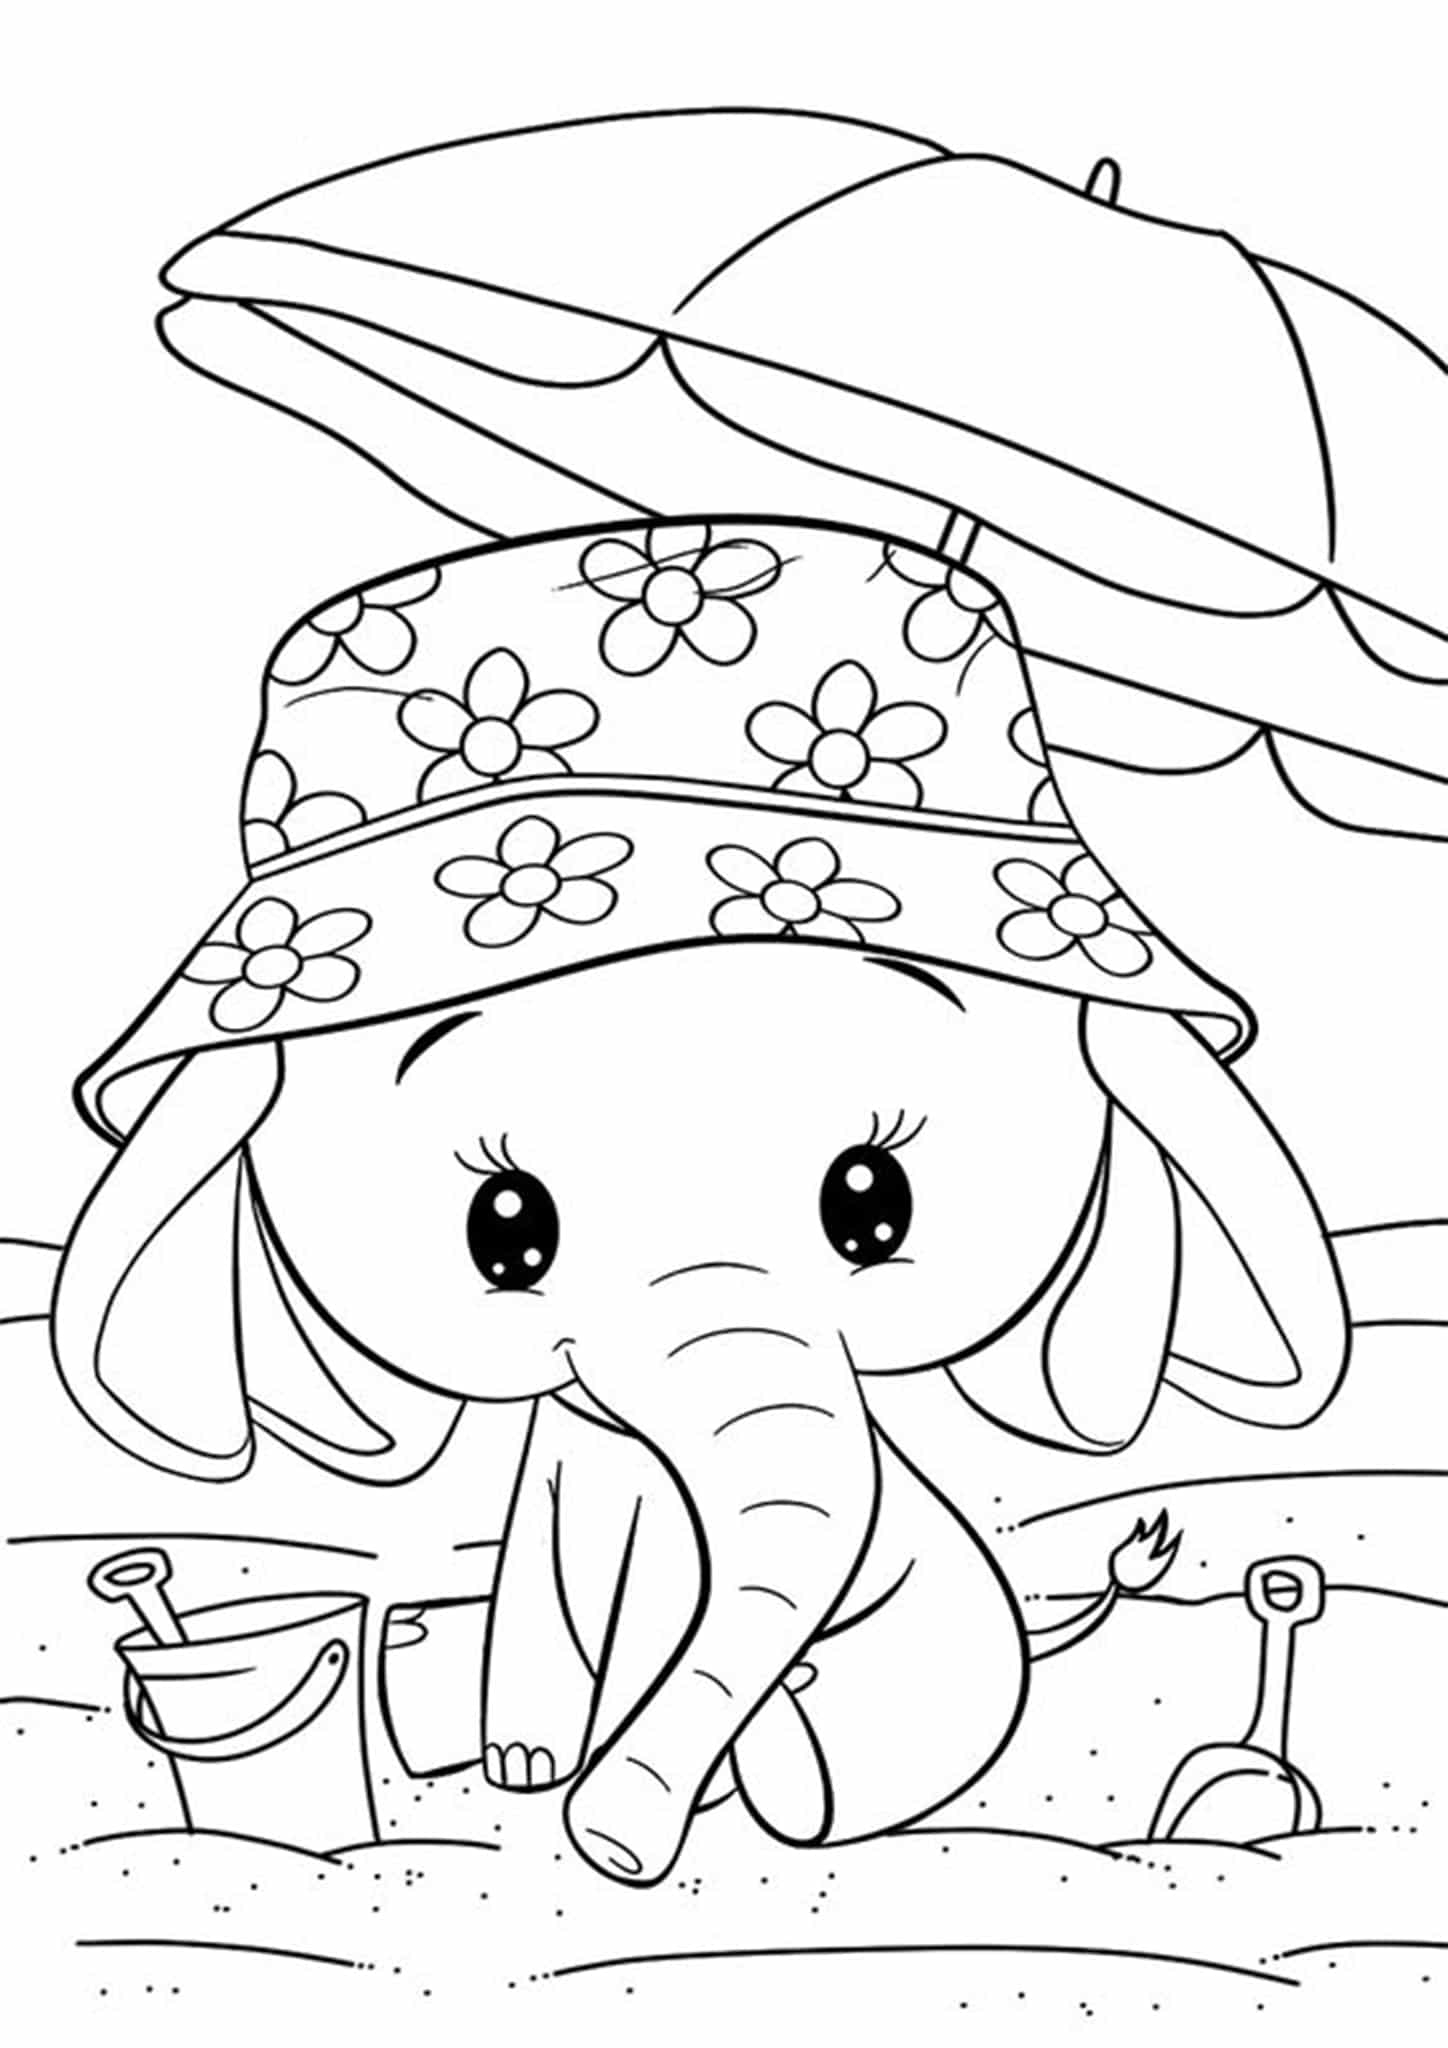 coloring pages elephants free easy to print elephant coloring pages tulamama pages elephants coloring